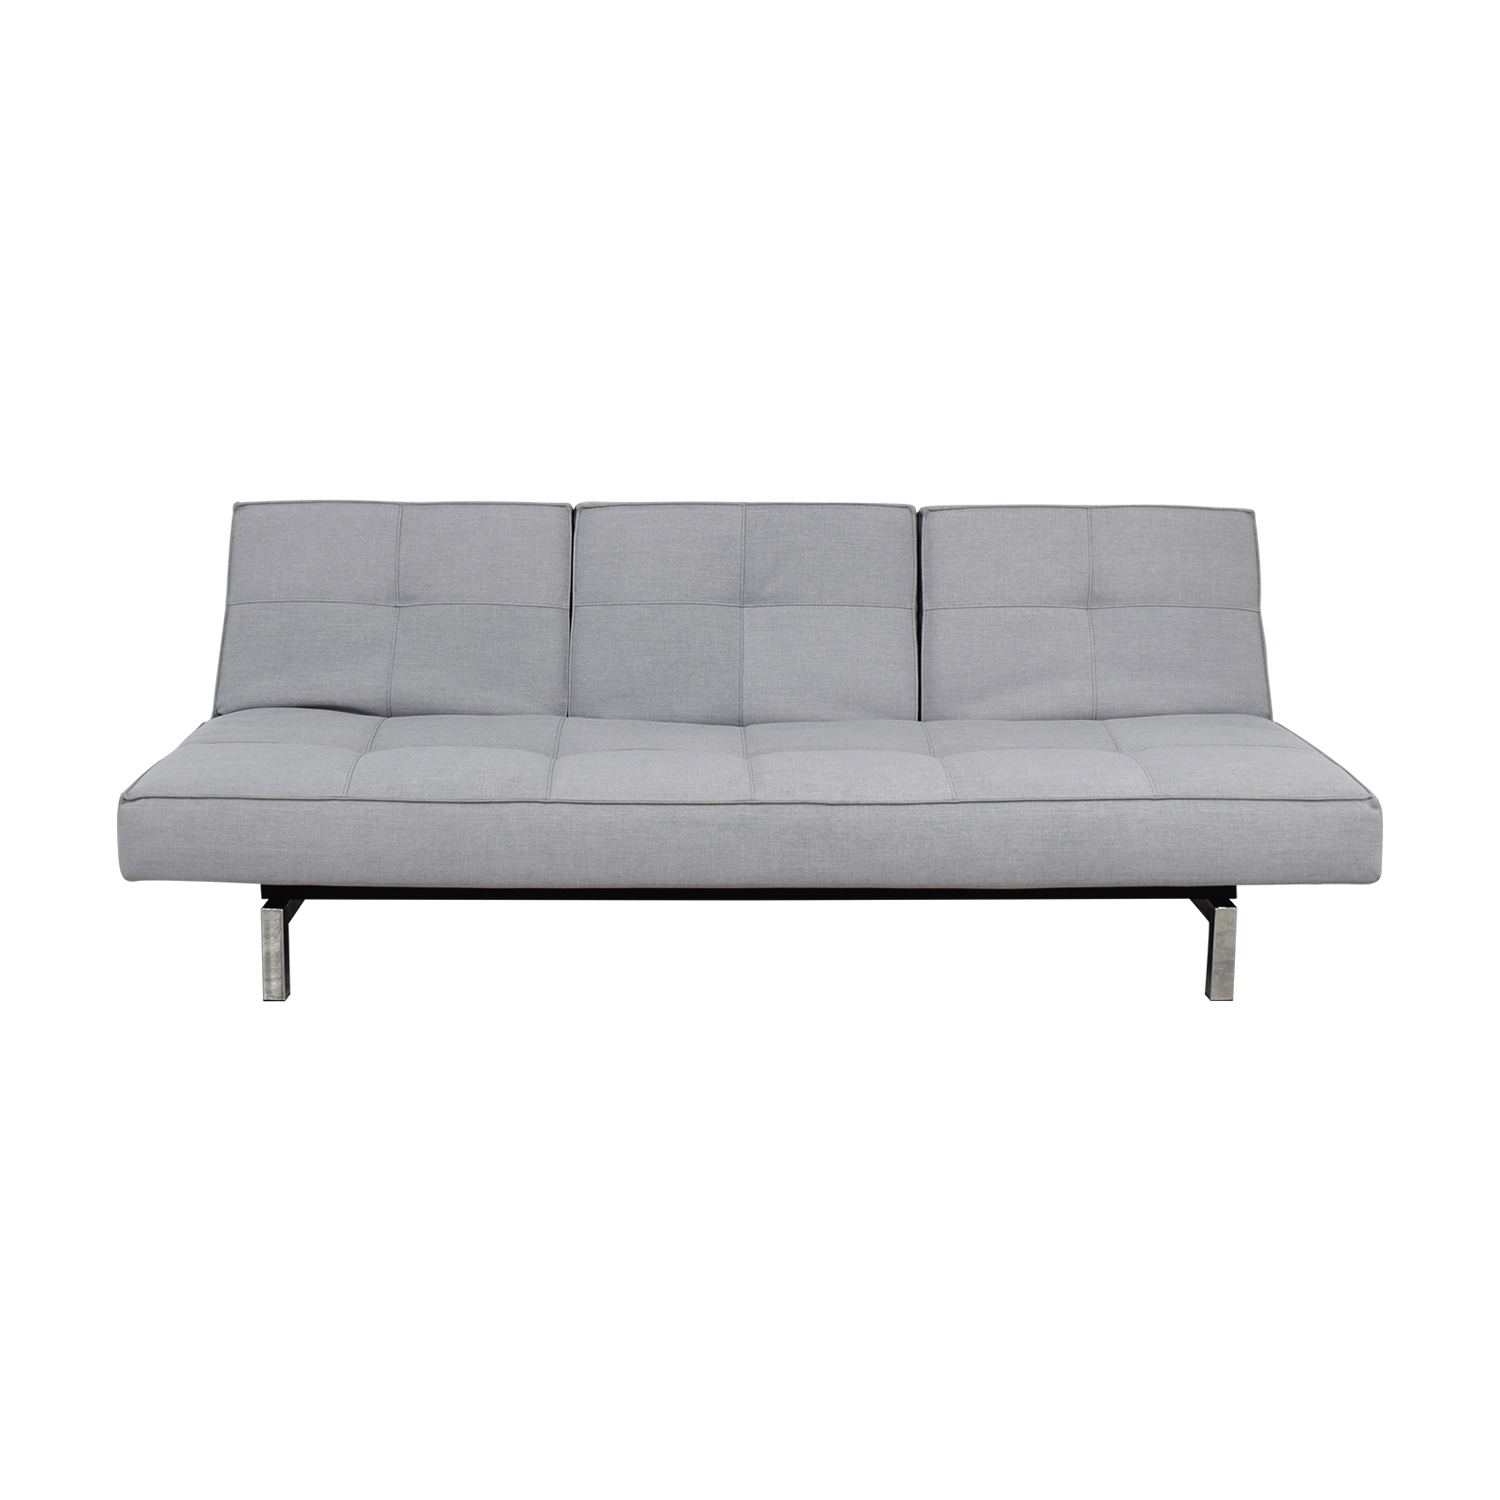 Room & Board Room & Board Eden Essen Grey Convertible Sleeper Sofa discount